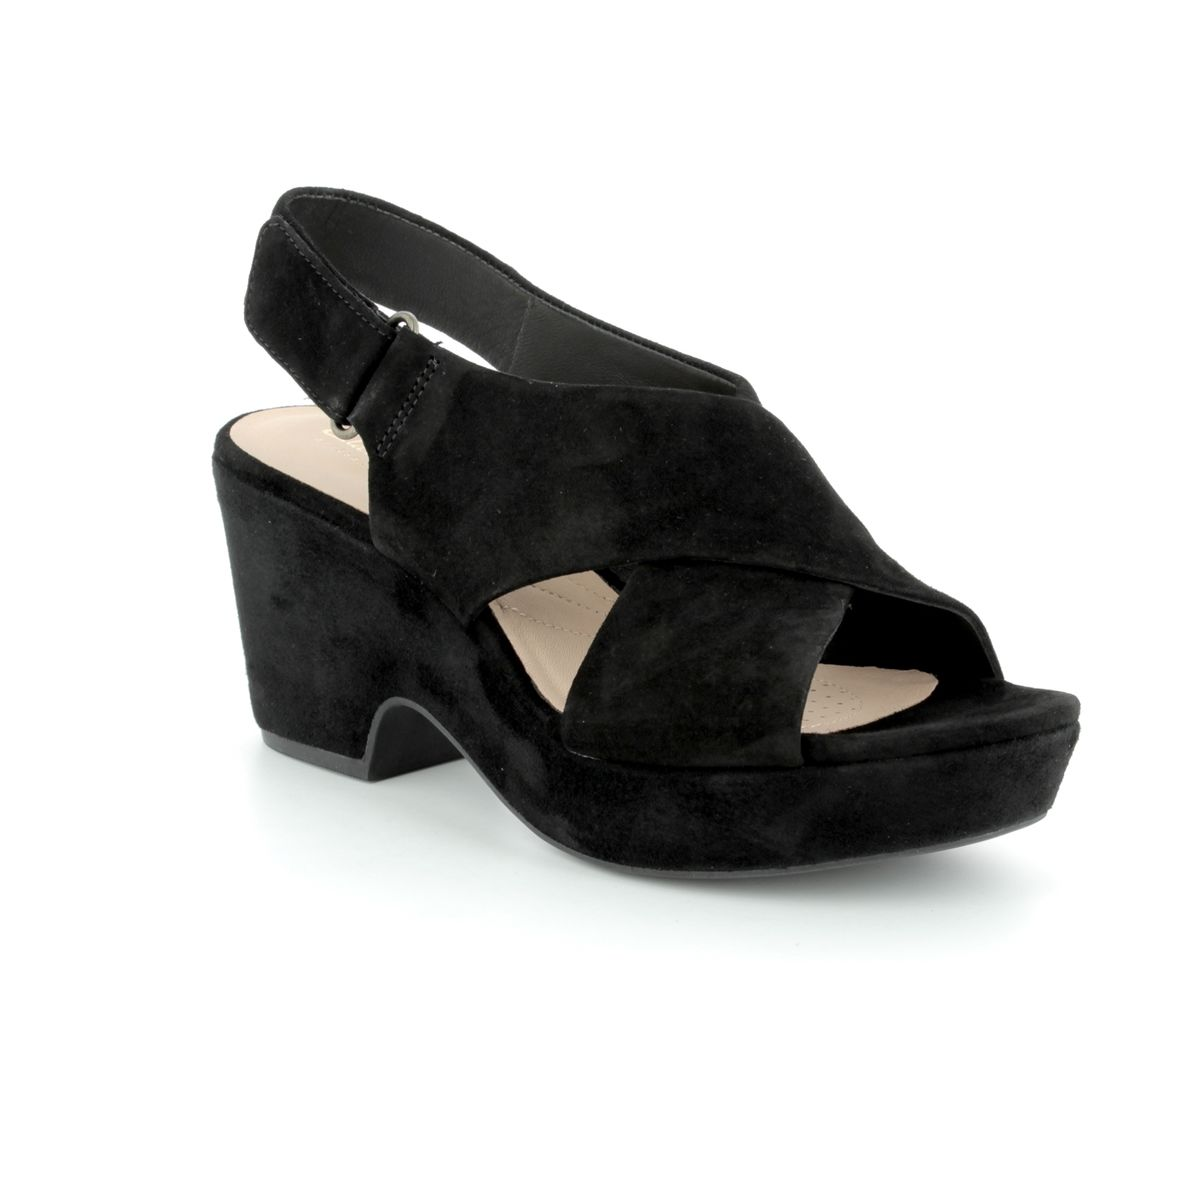 450d38b2606 Clarks Heeled Sandals - Black suede or snake - 3177 44D MARITSA LARA